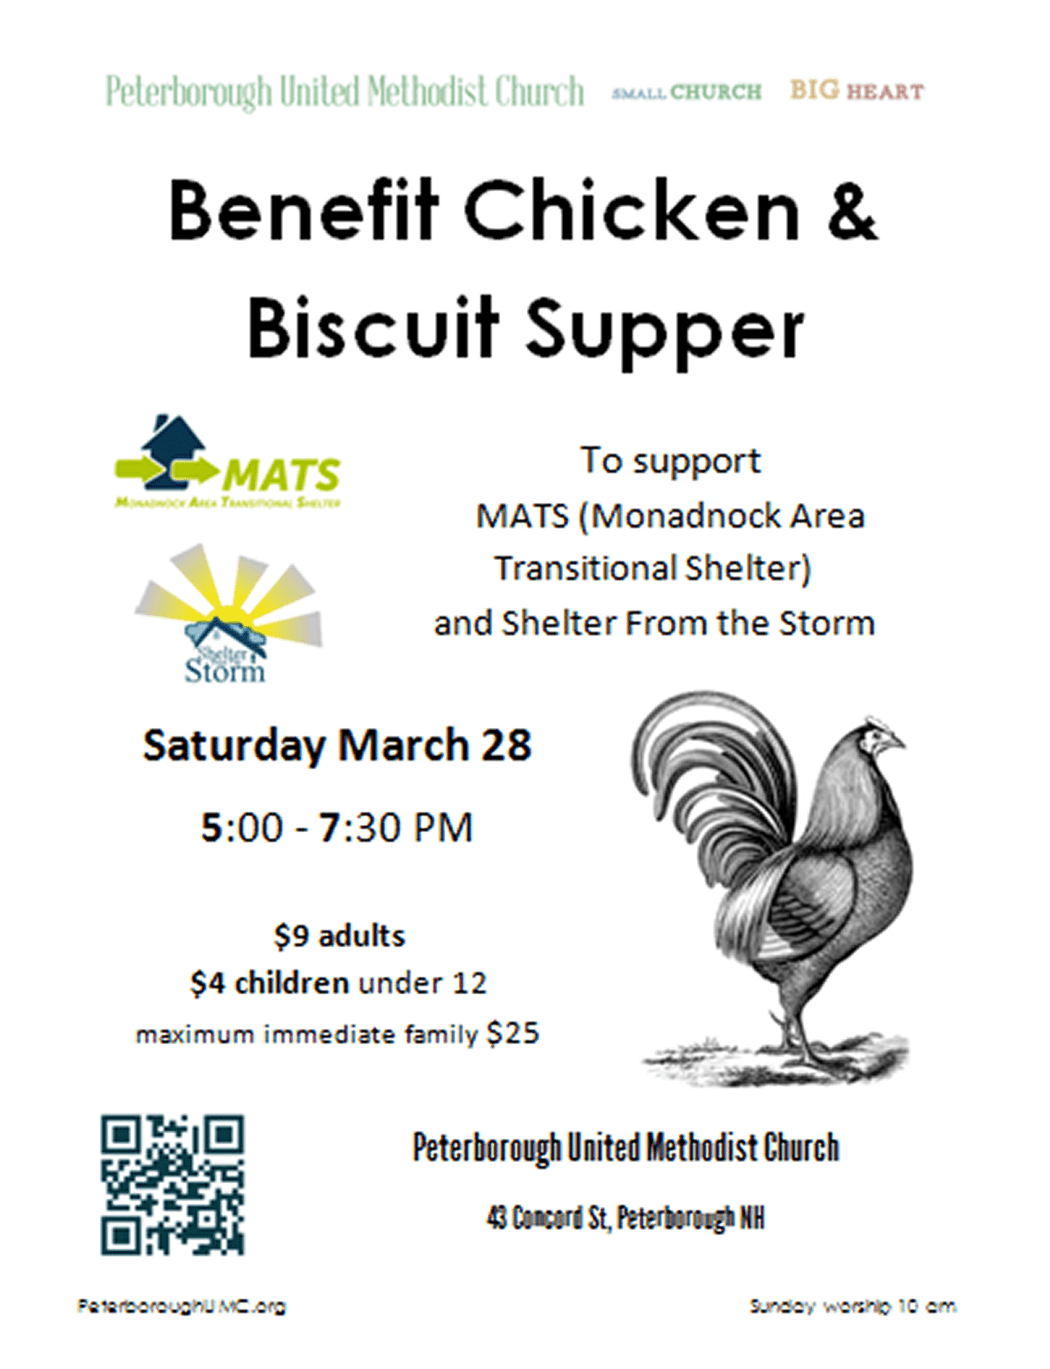 Benefit Chicken and Biscuit Supper